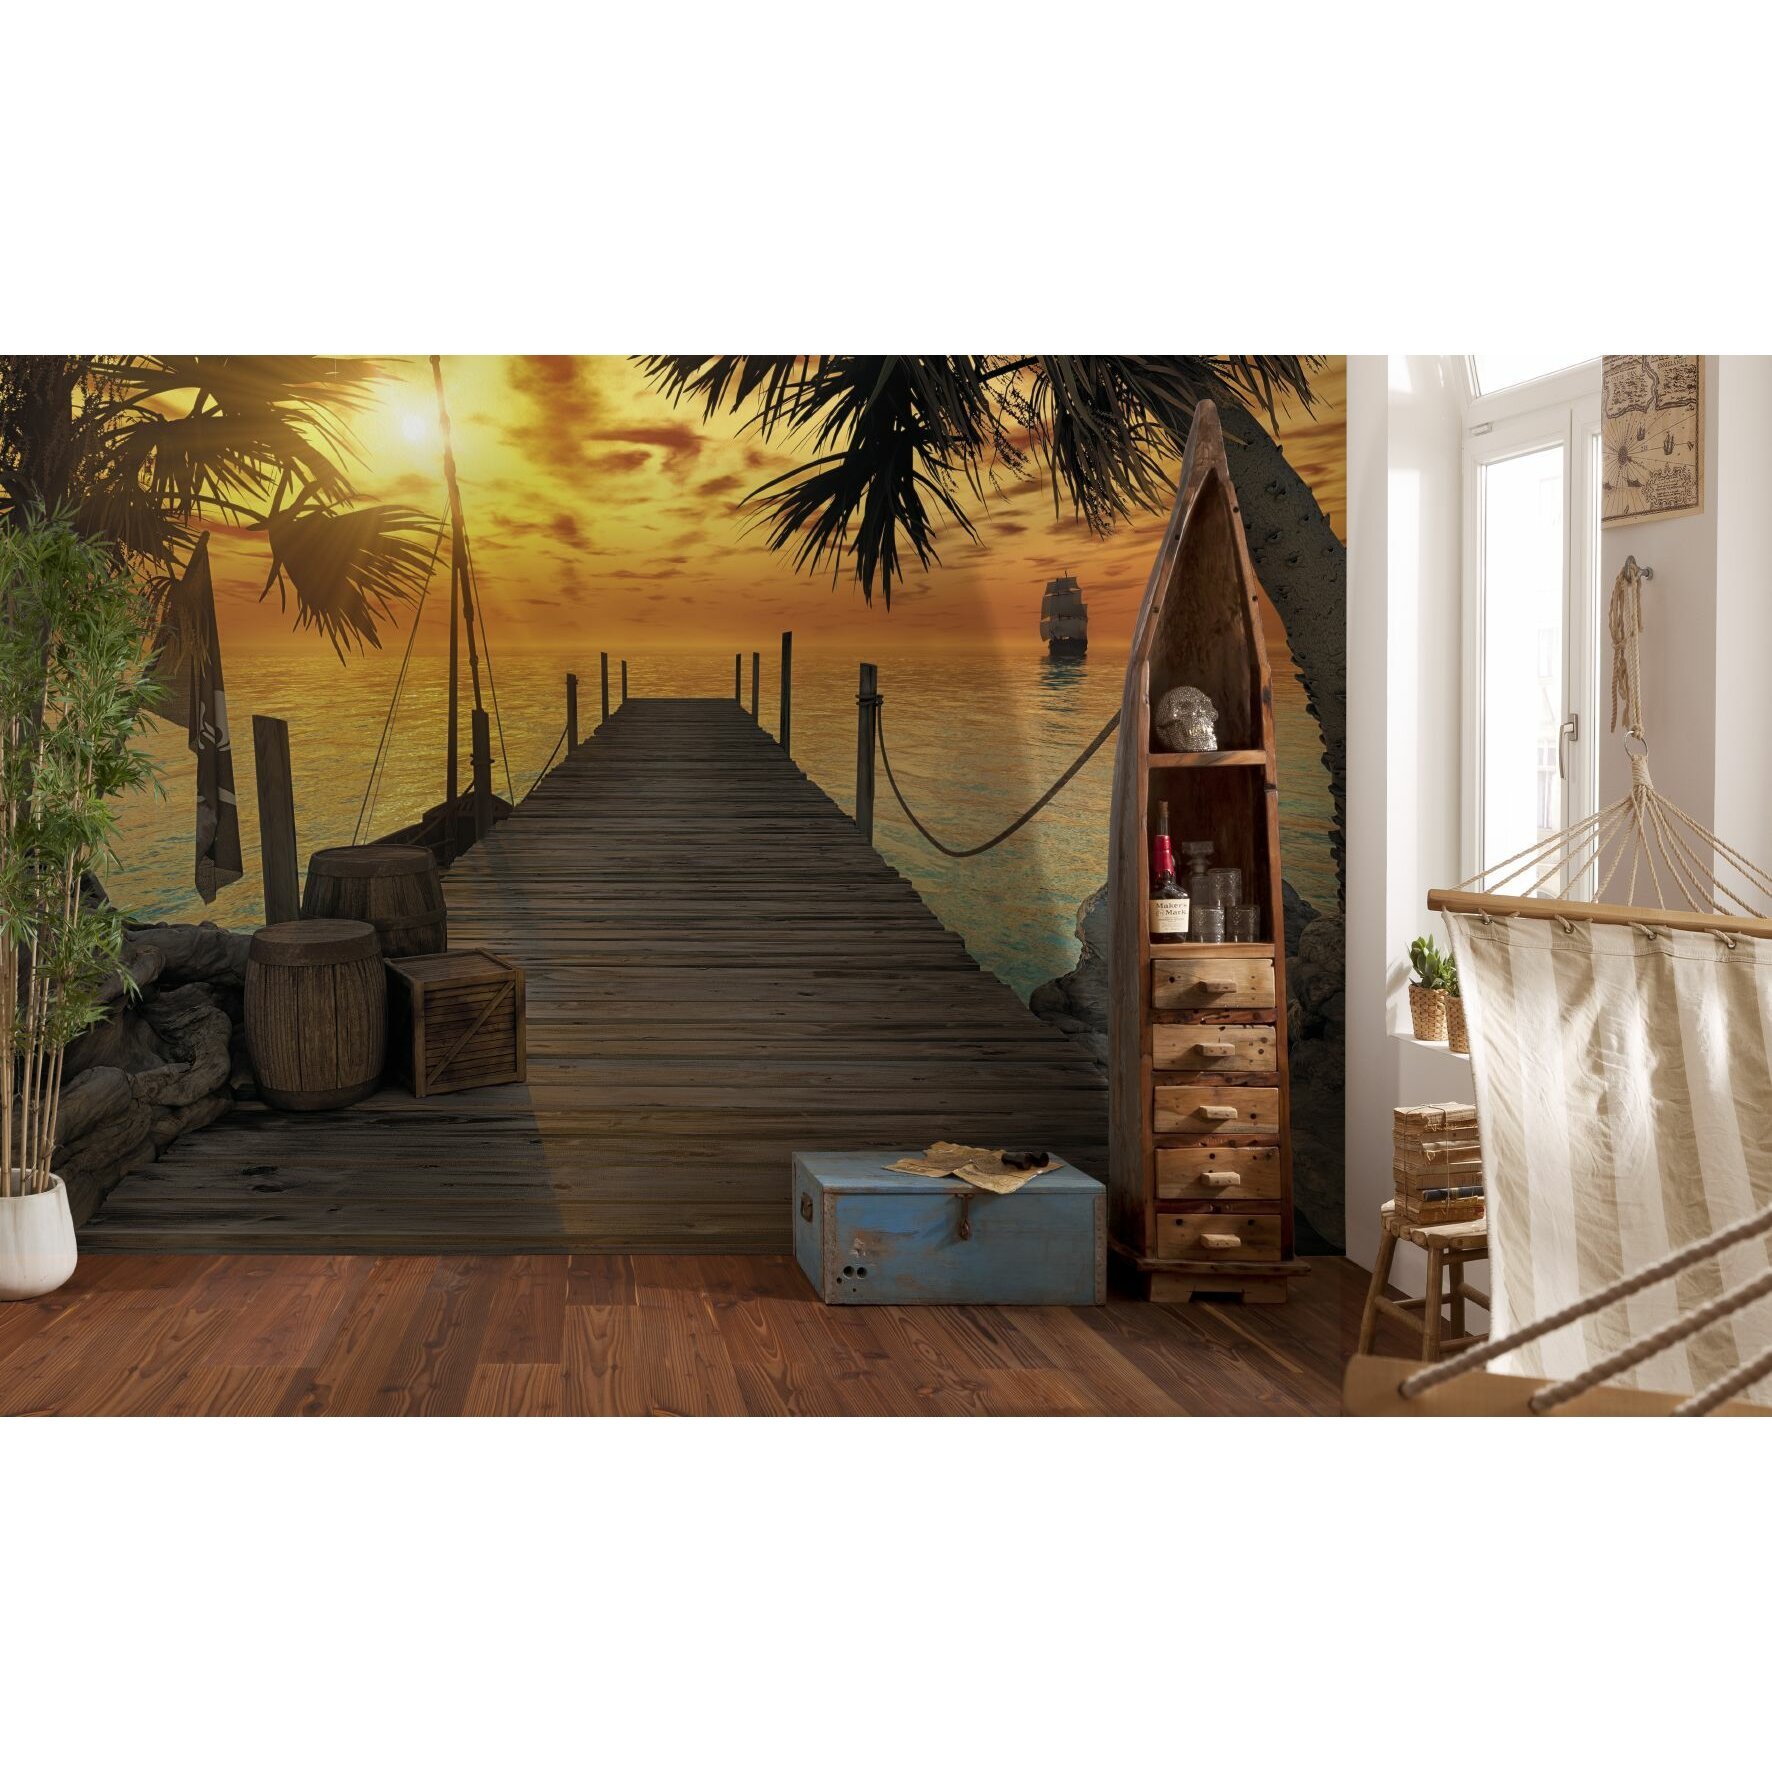 Brewster home fashions komar treasure island dock wall for Brewster birch wall mural